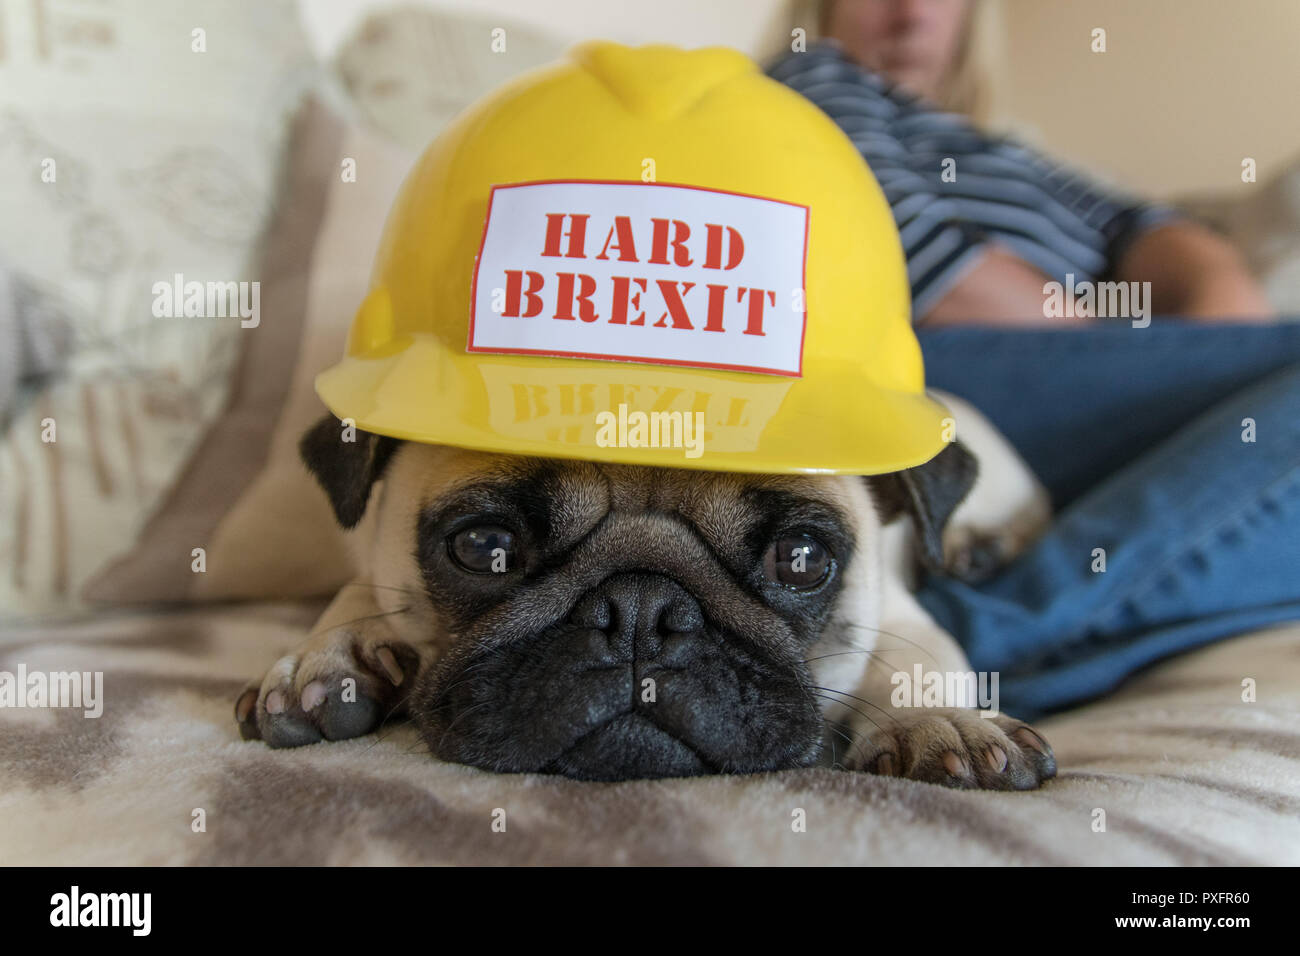 Hard Brexit Pug - wearing a safety hat with the words Hard Brexit on and looking glum - Stock Image